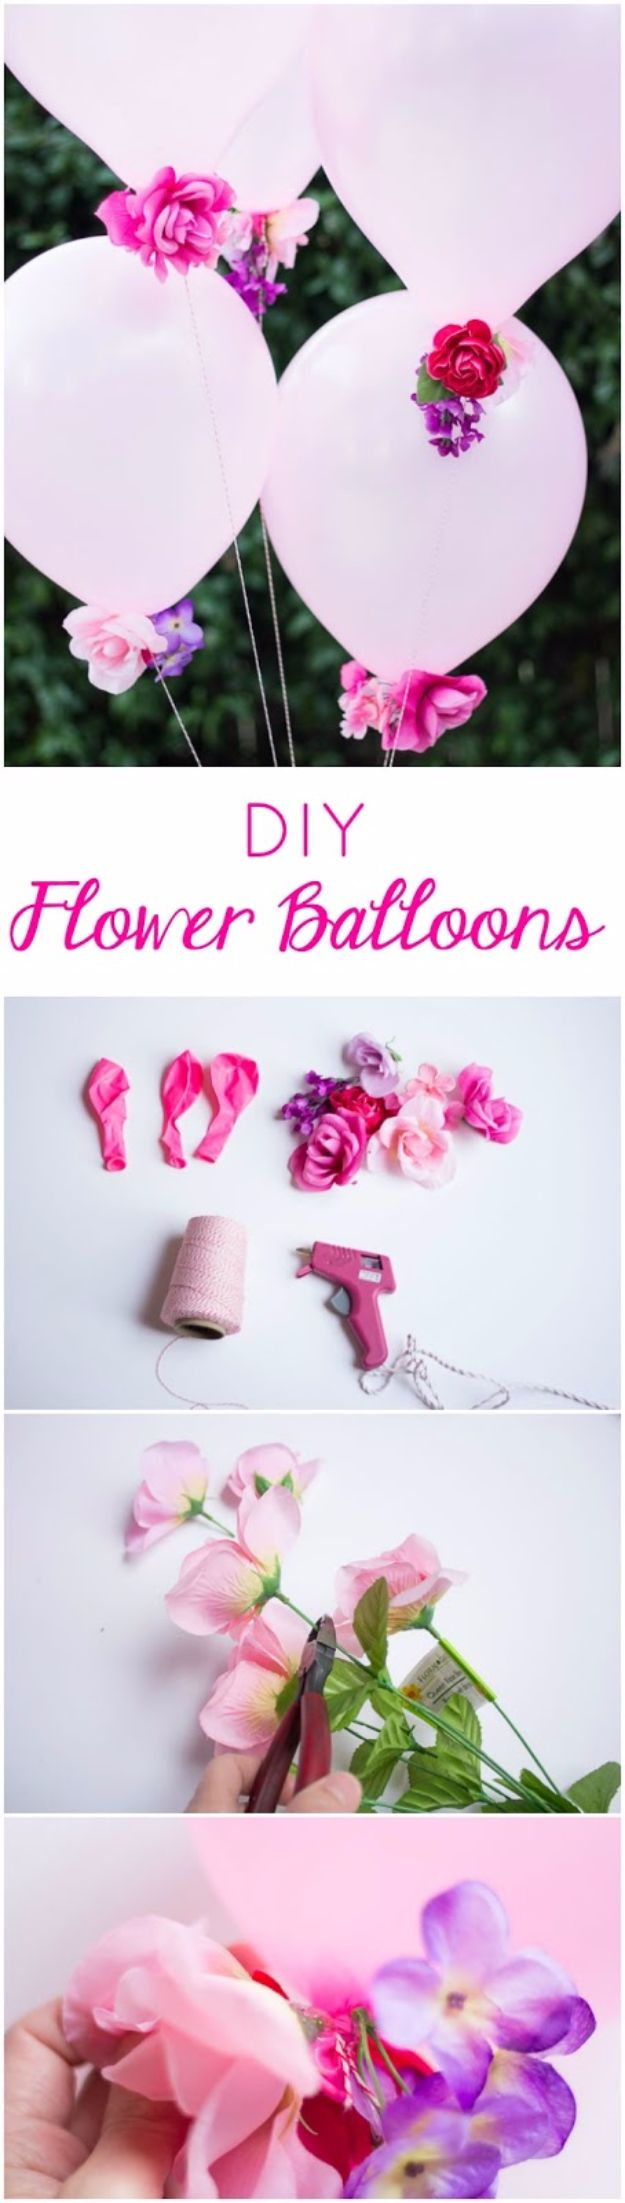 Balloon Crafts - DIY Flower Balloons - Fun Balloon Craft Ideas, Wall Art Projects and Cute Ballon Decor - DIY Balloon Ideas for Toddlers, Preschool Kids, Teens and Adults - Cheap Crafts Made With Balloons - Pumpkins, Bowls, Marshmallow Shooters, Balls, Glow Stick, Hot Air, Stress Ball http://diyjoy.com/balloon-crafts